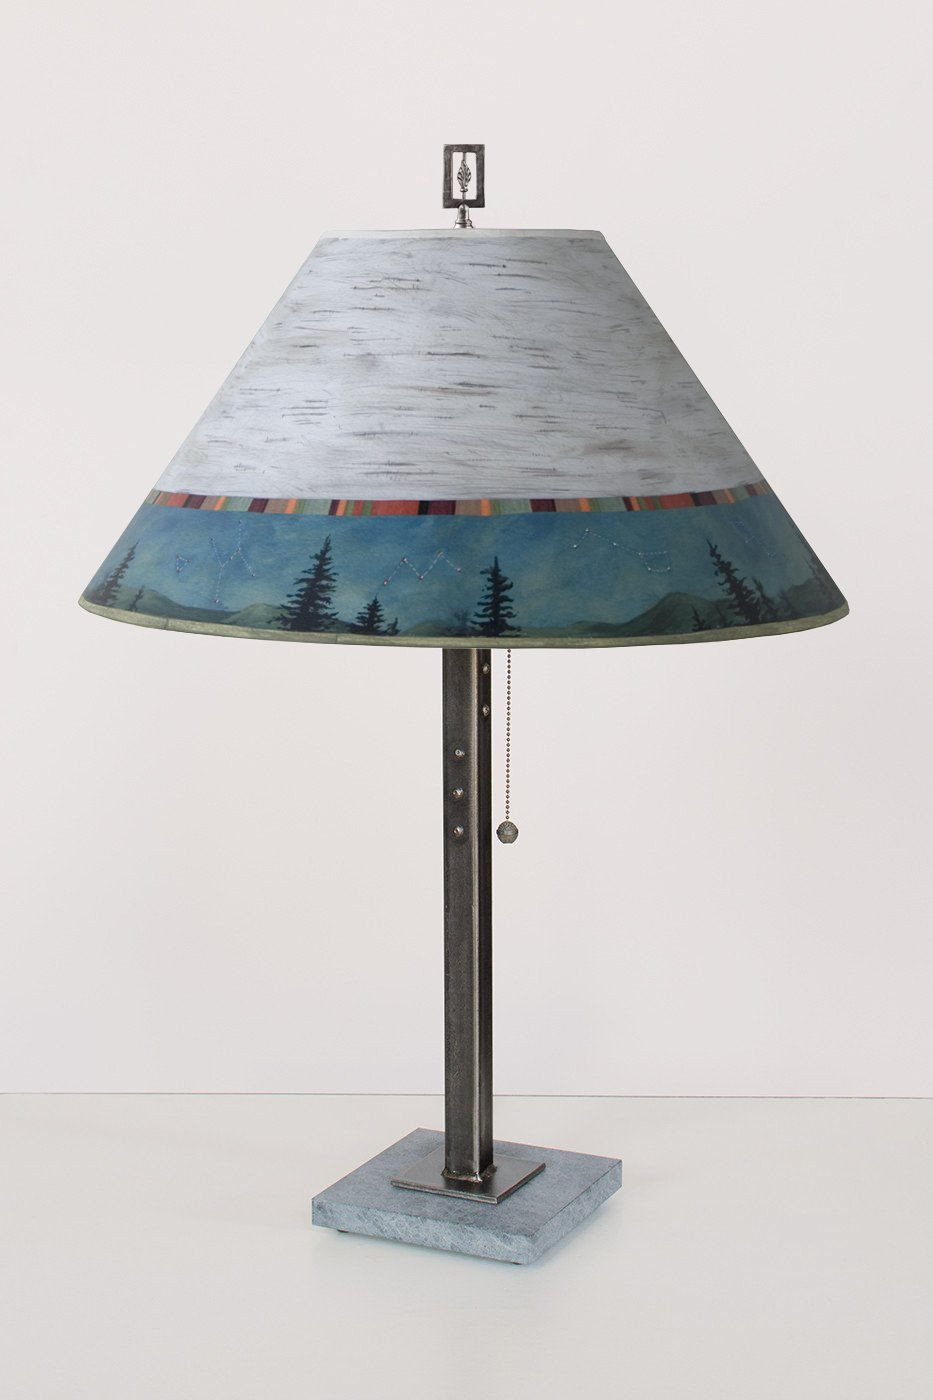 Steel Table Lamp on Italian Marble with Large Conical Shade in Birch Midnight